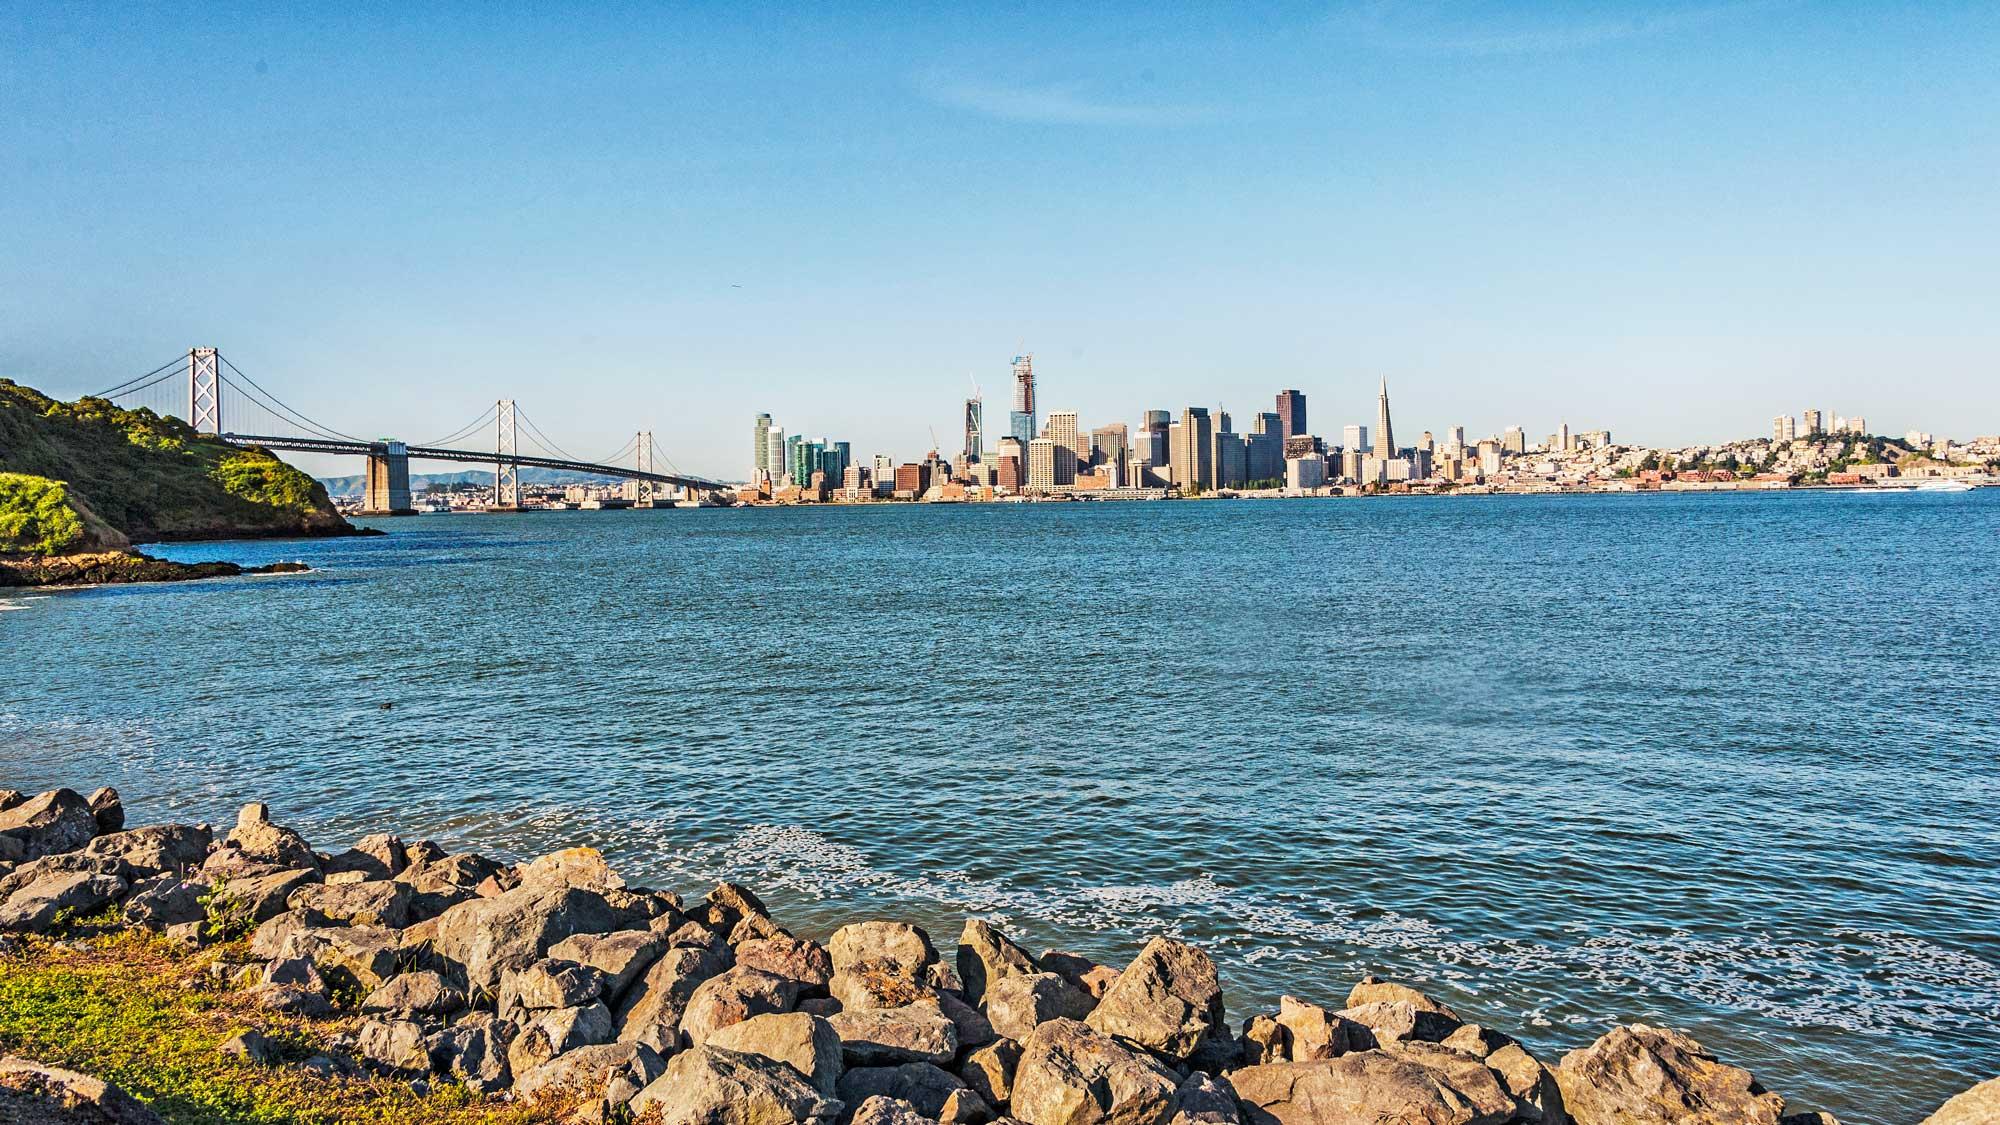 Harris to Provide Special District Finance Services for Improvements to Treasure Island/Yerba Buena Island